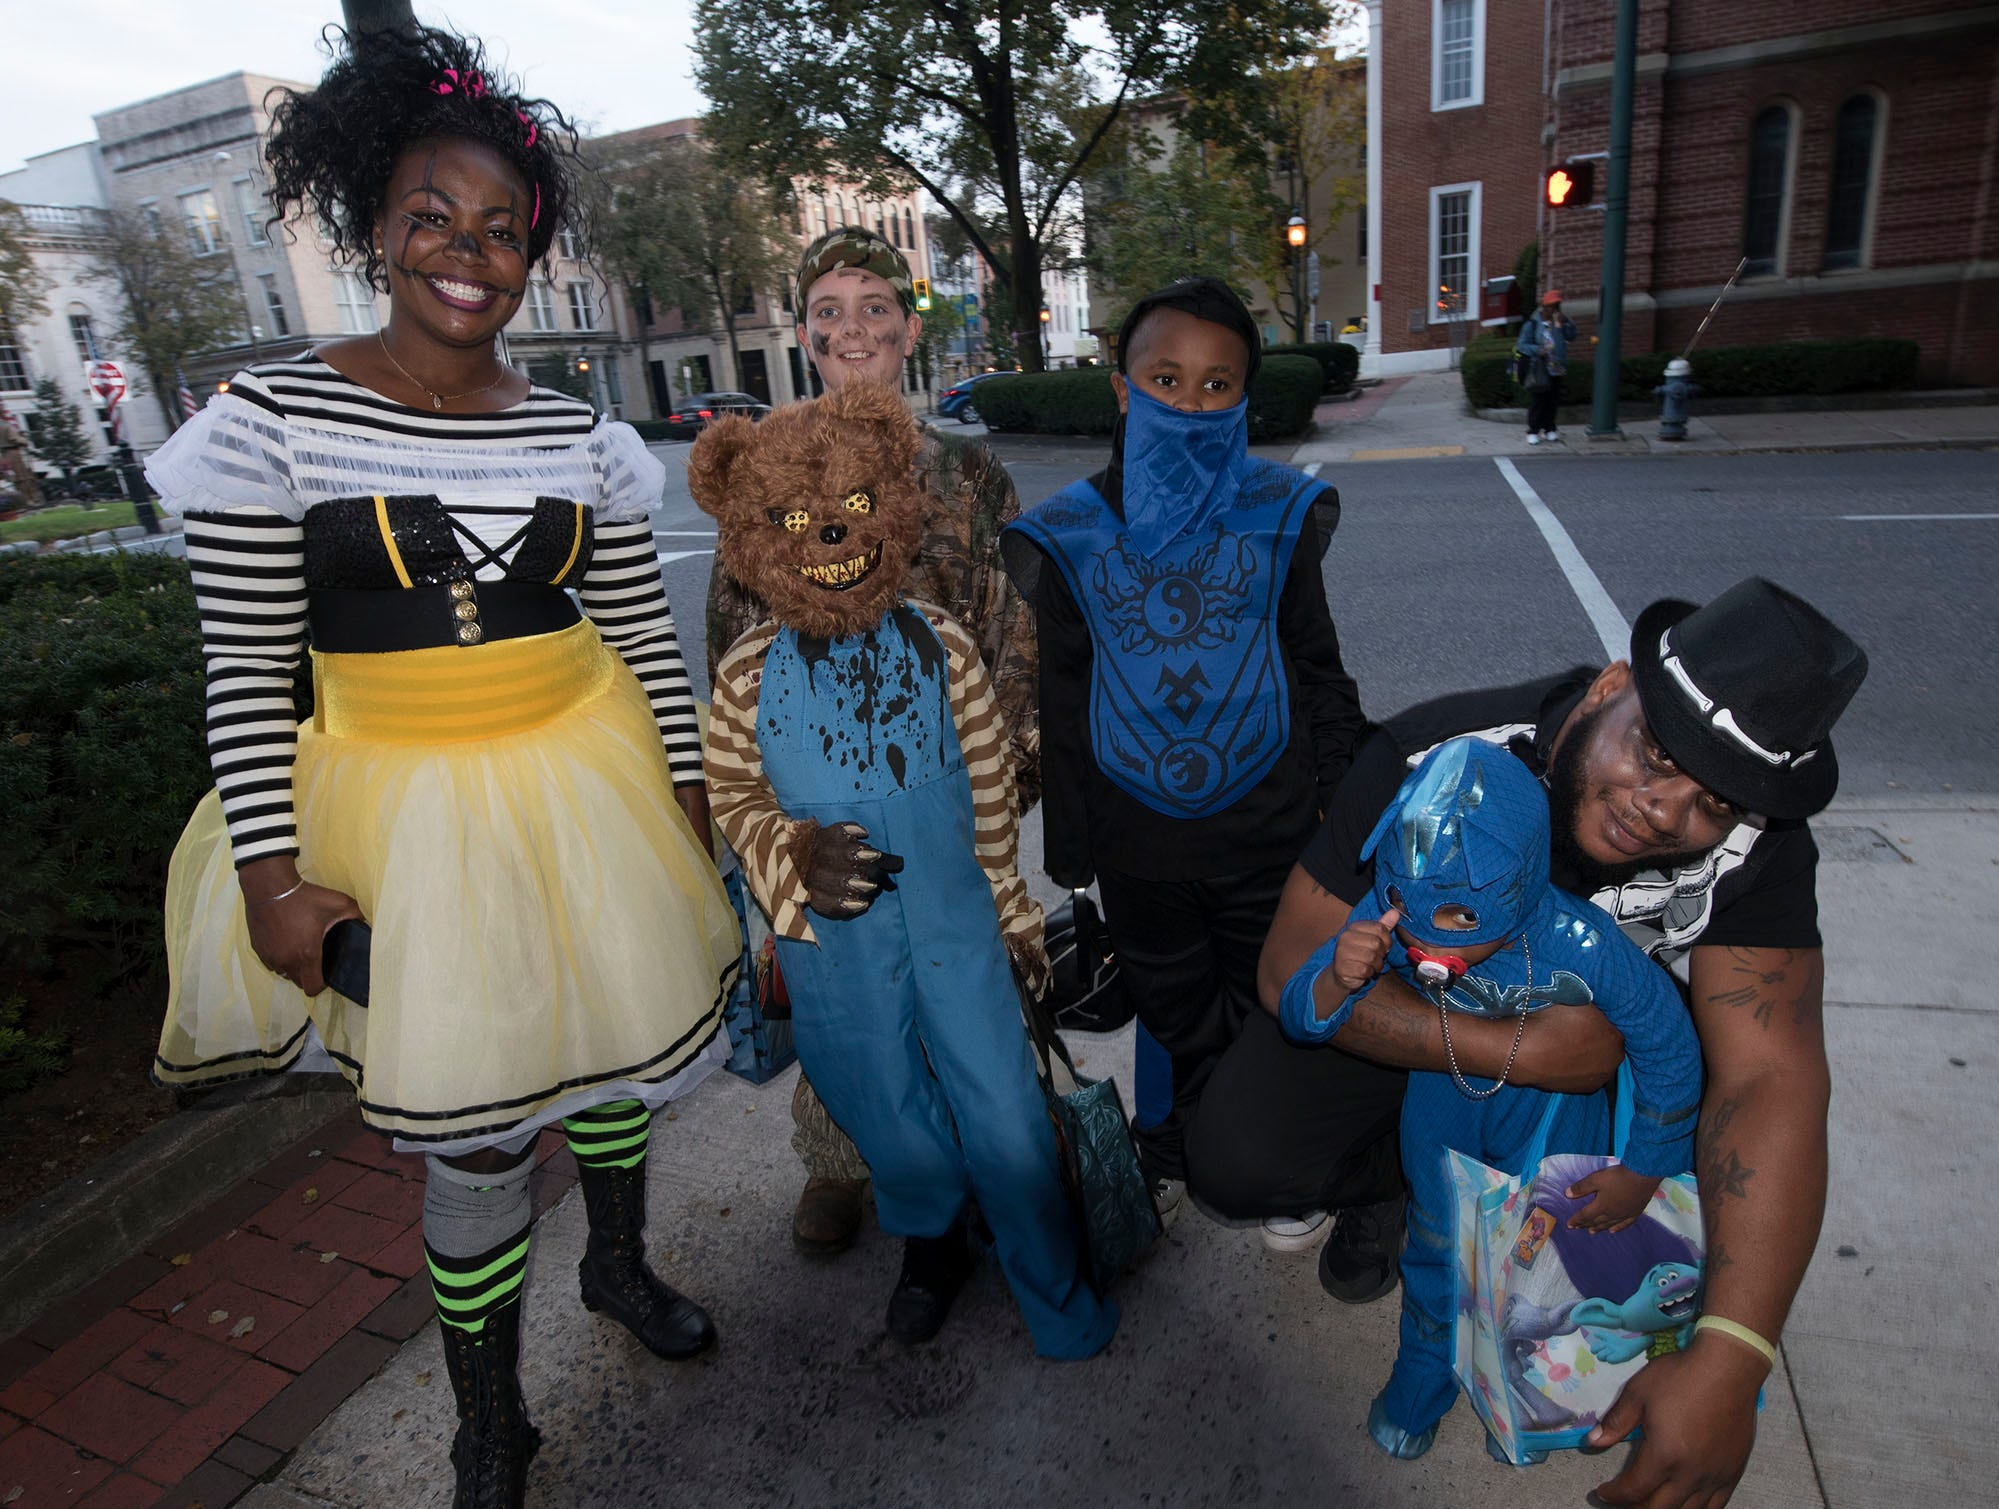 Vincent and LaAngel King are in costumes with their kids and neighbors in downtown Chambersburg on trick or treat night, Oct. 31, 2018.